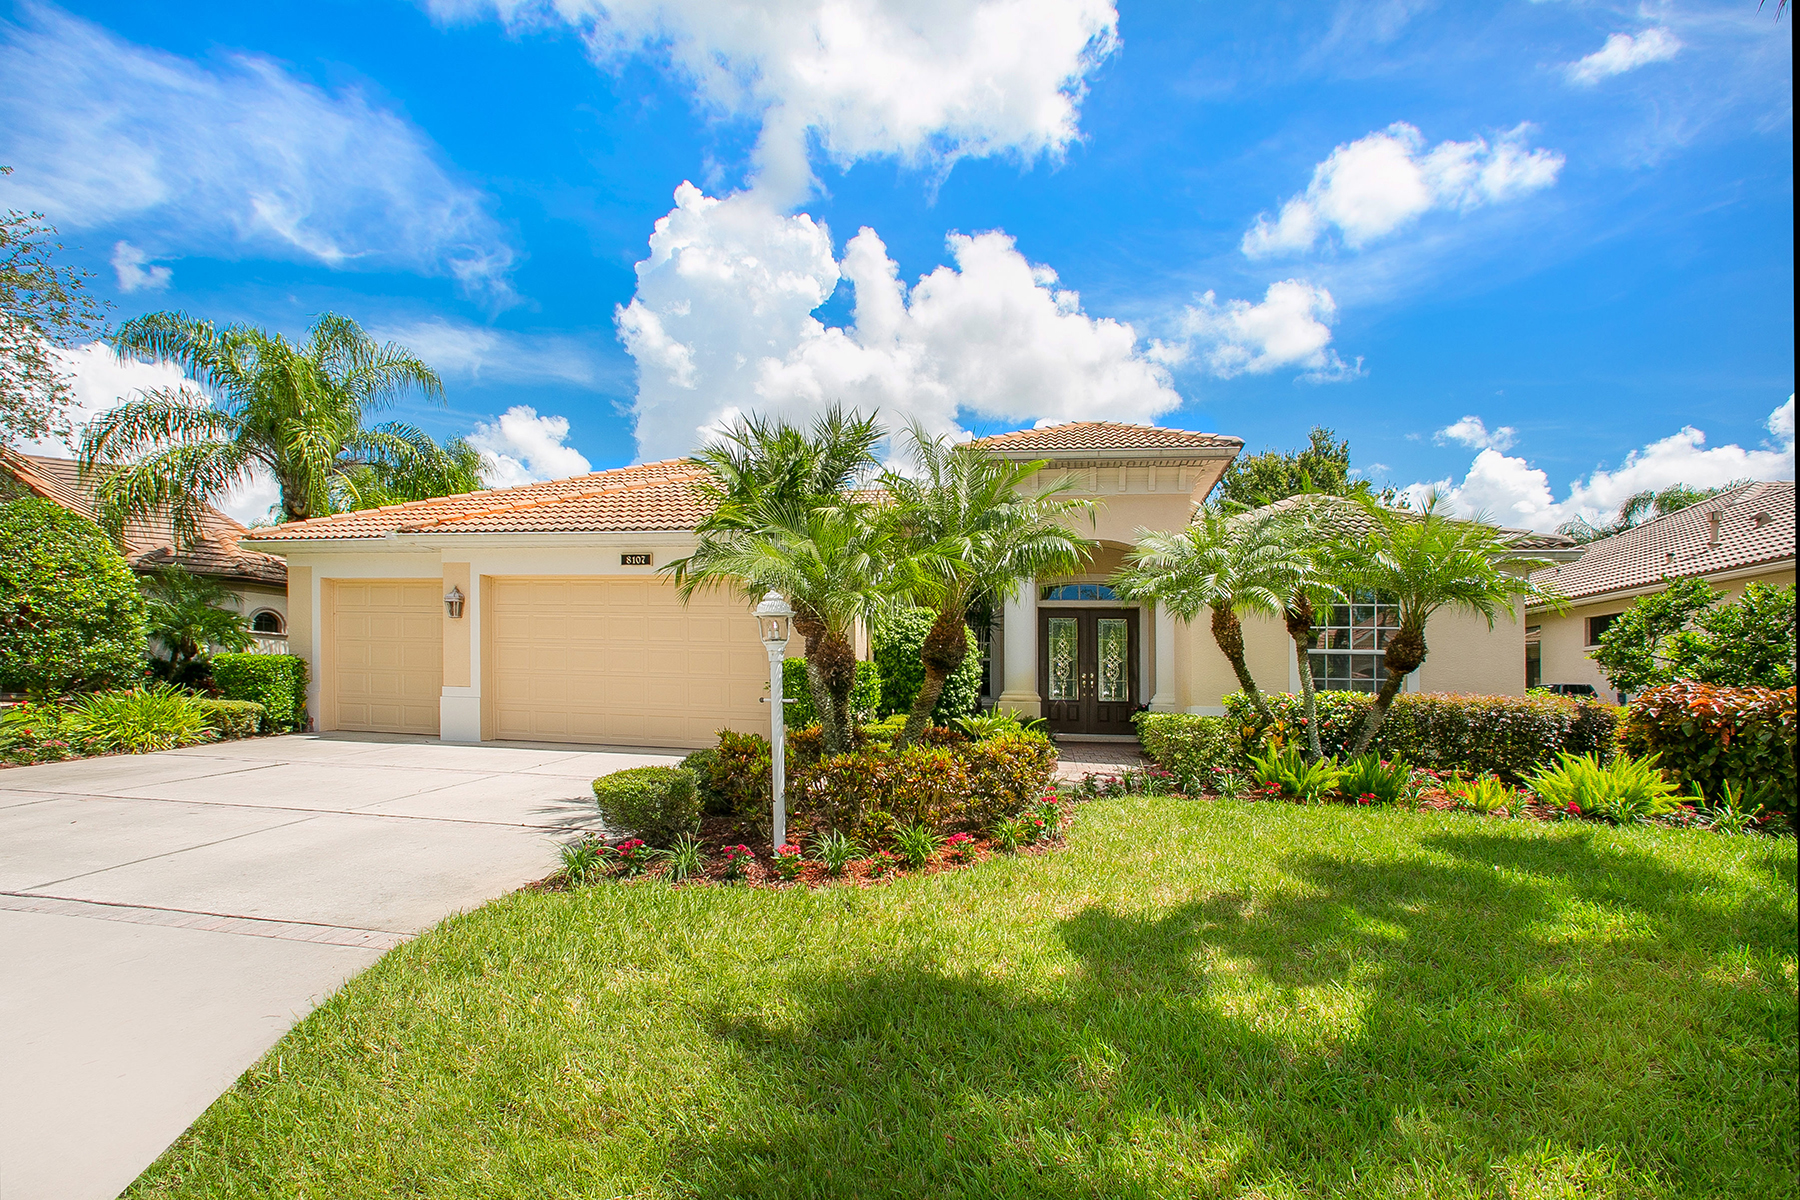 open-houses property at LAKEWOOD RANCH COUNTRY CLUB